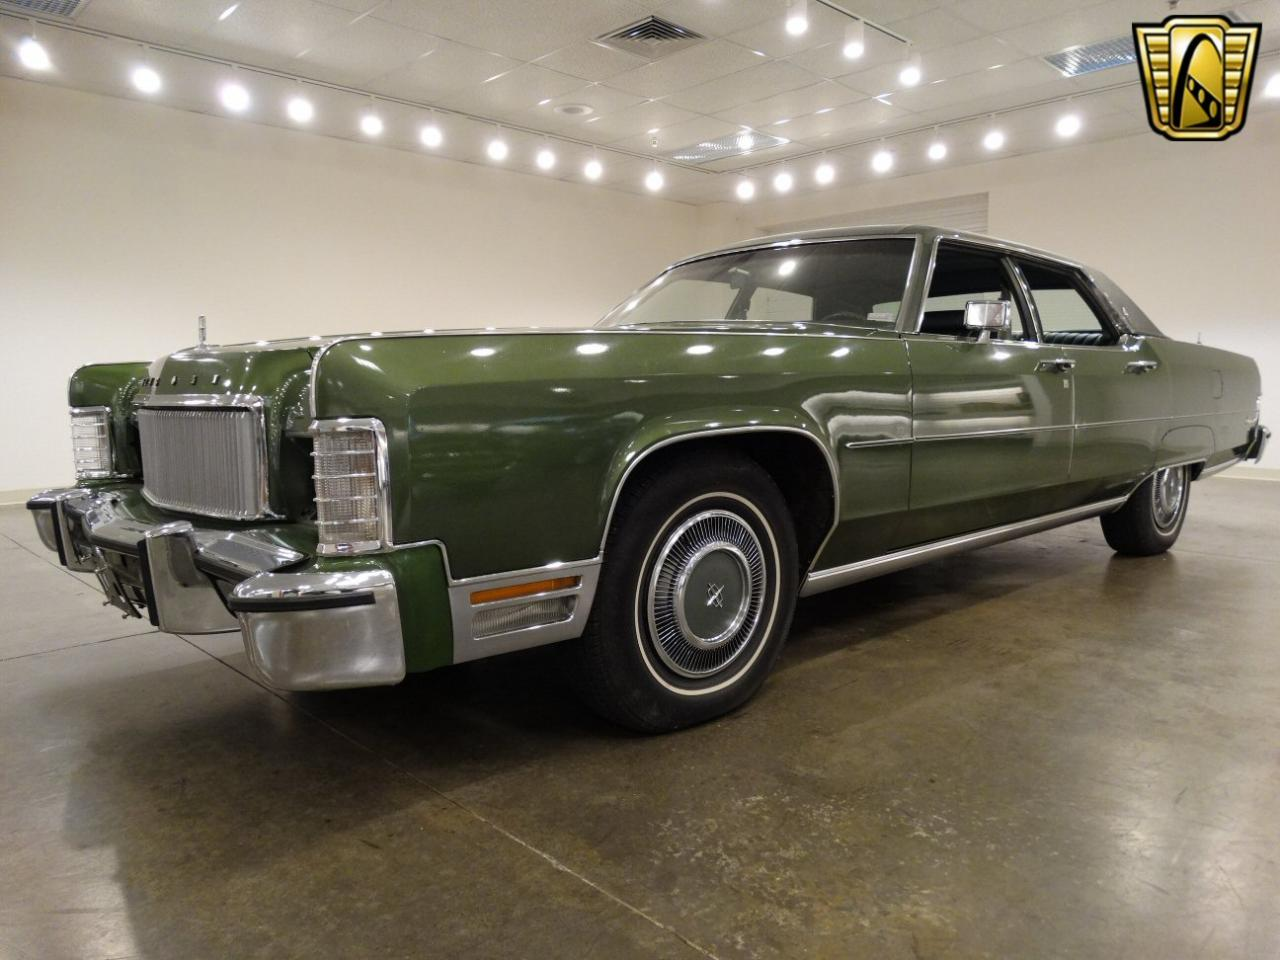 1974 lincoln continental for sale photos technical specifications description. Black Bedroom Furniture Sets. Home Design Ideas